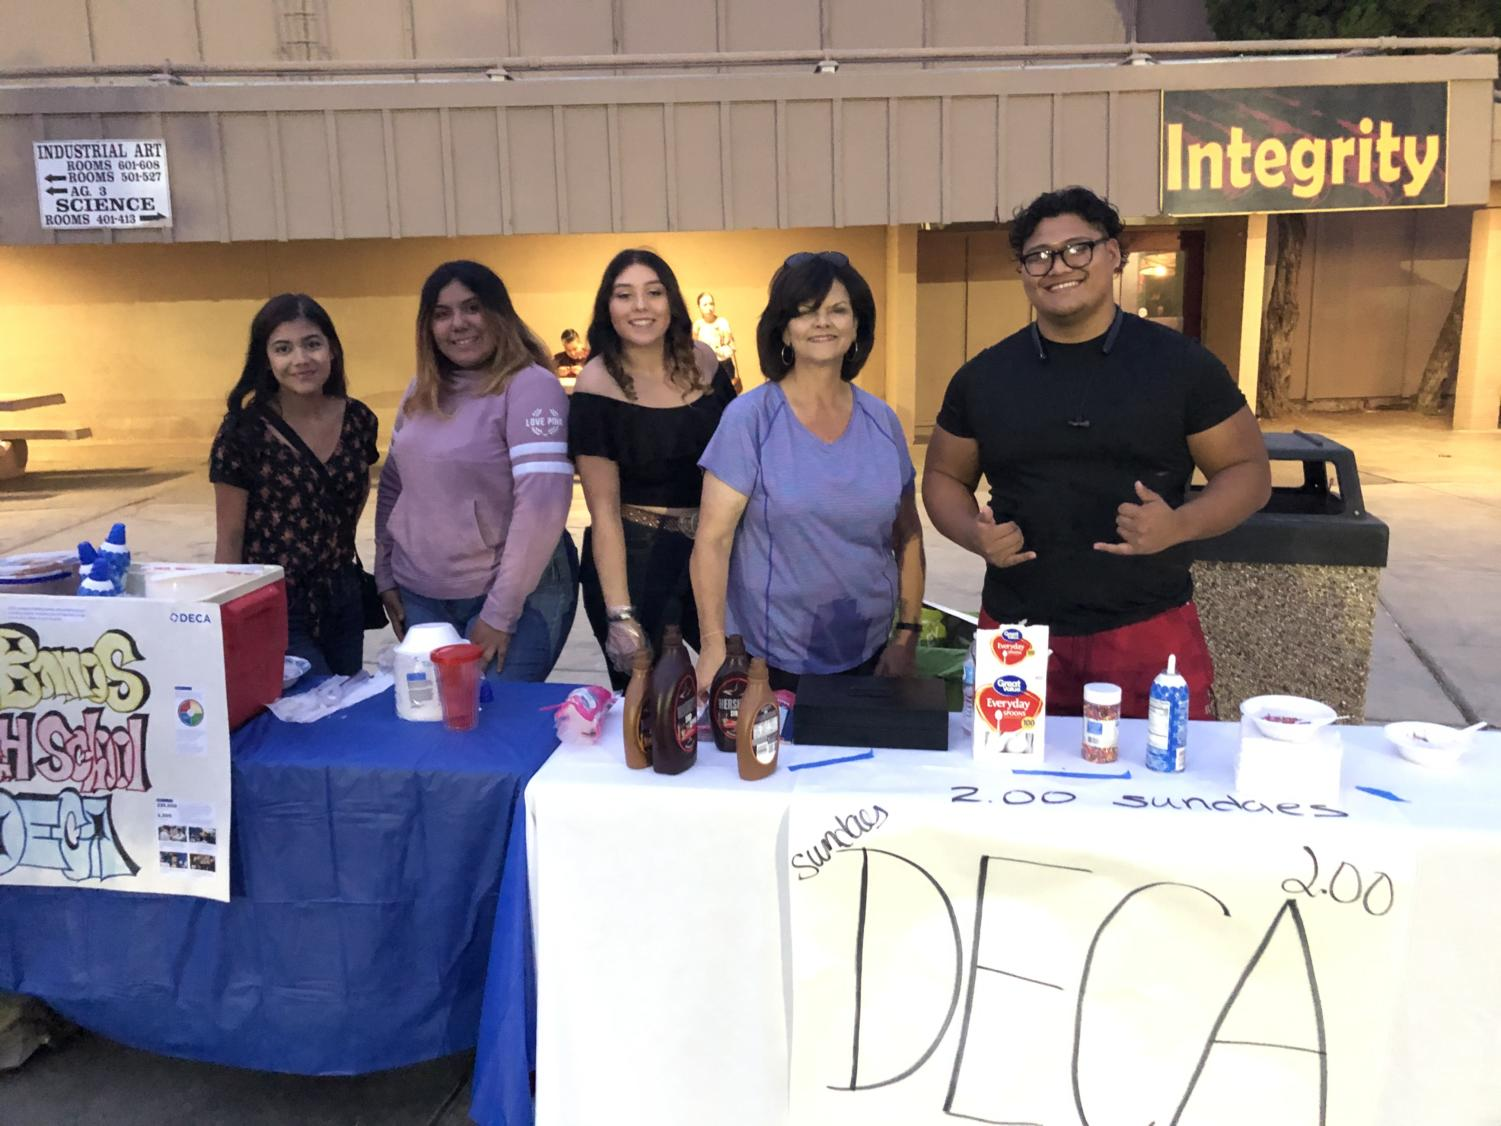 DECA club sells ice cream during the festival.